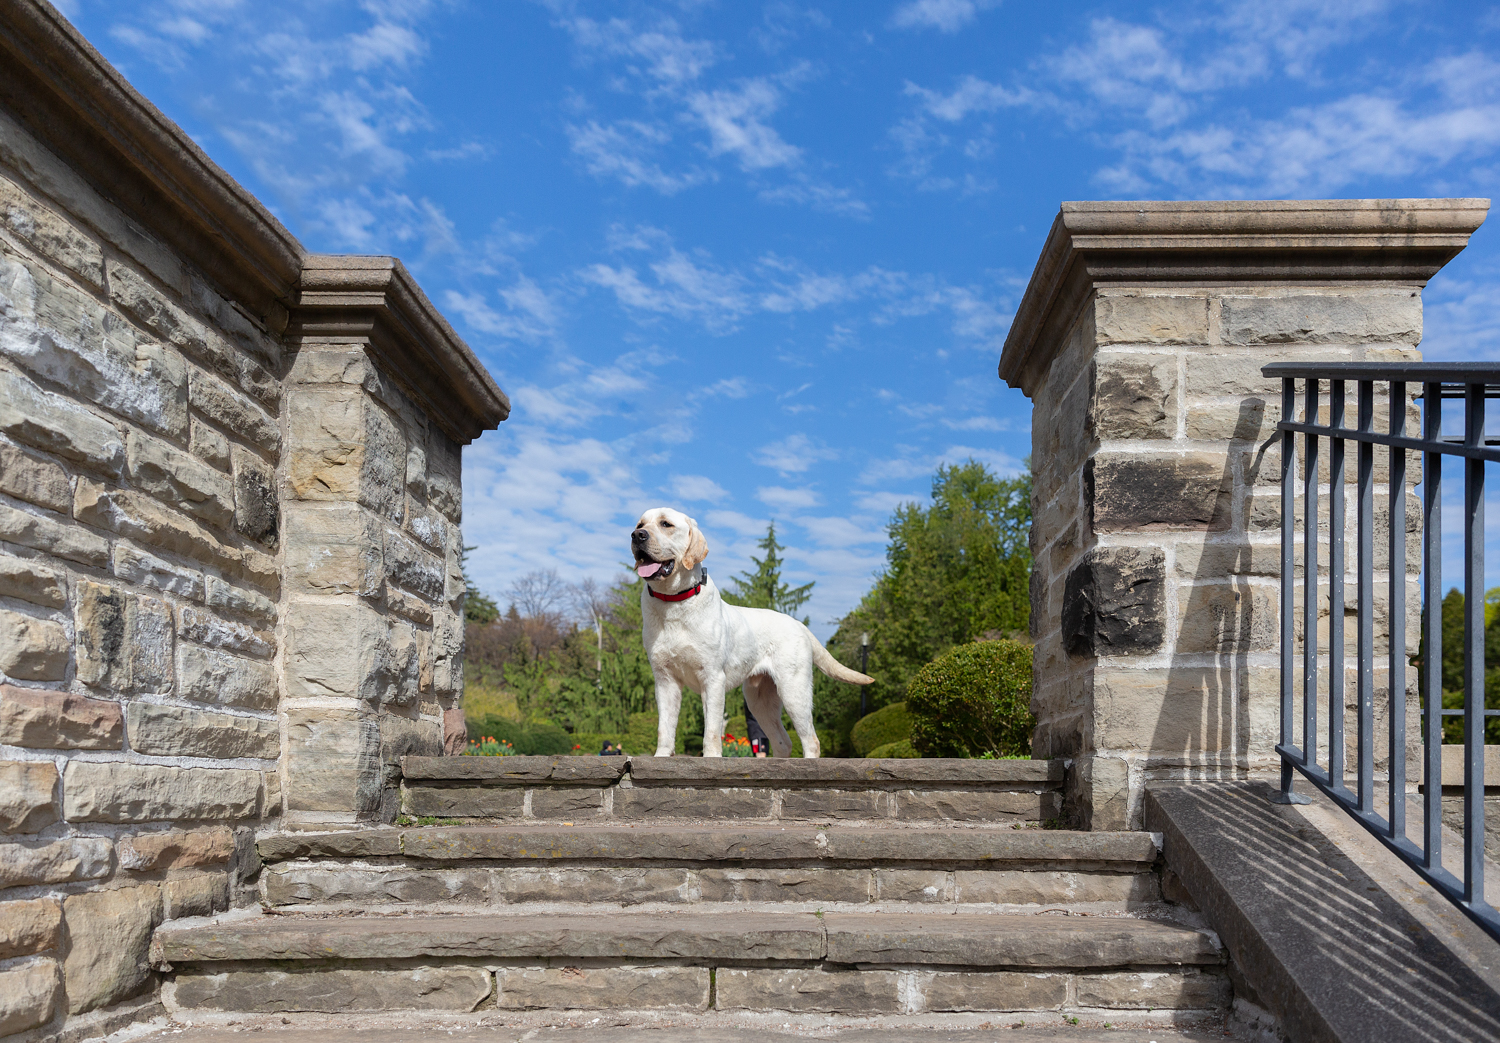 dog-at-top-of-stairs-Alexander-muir-memorial-Gardens-Toronto-pho